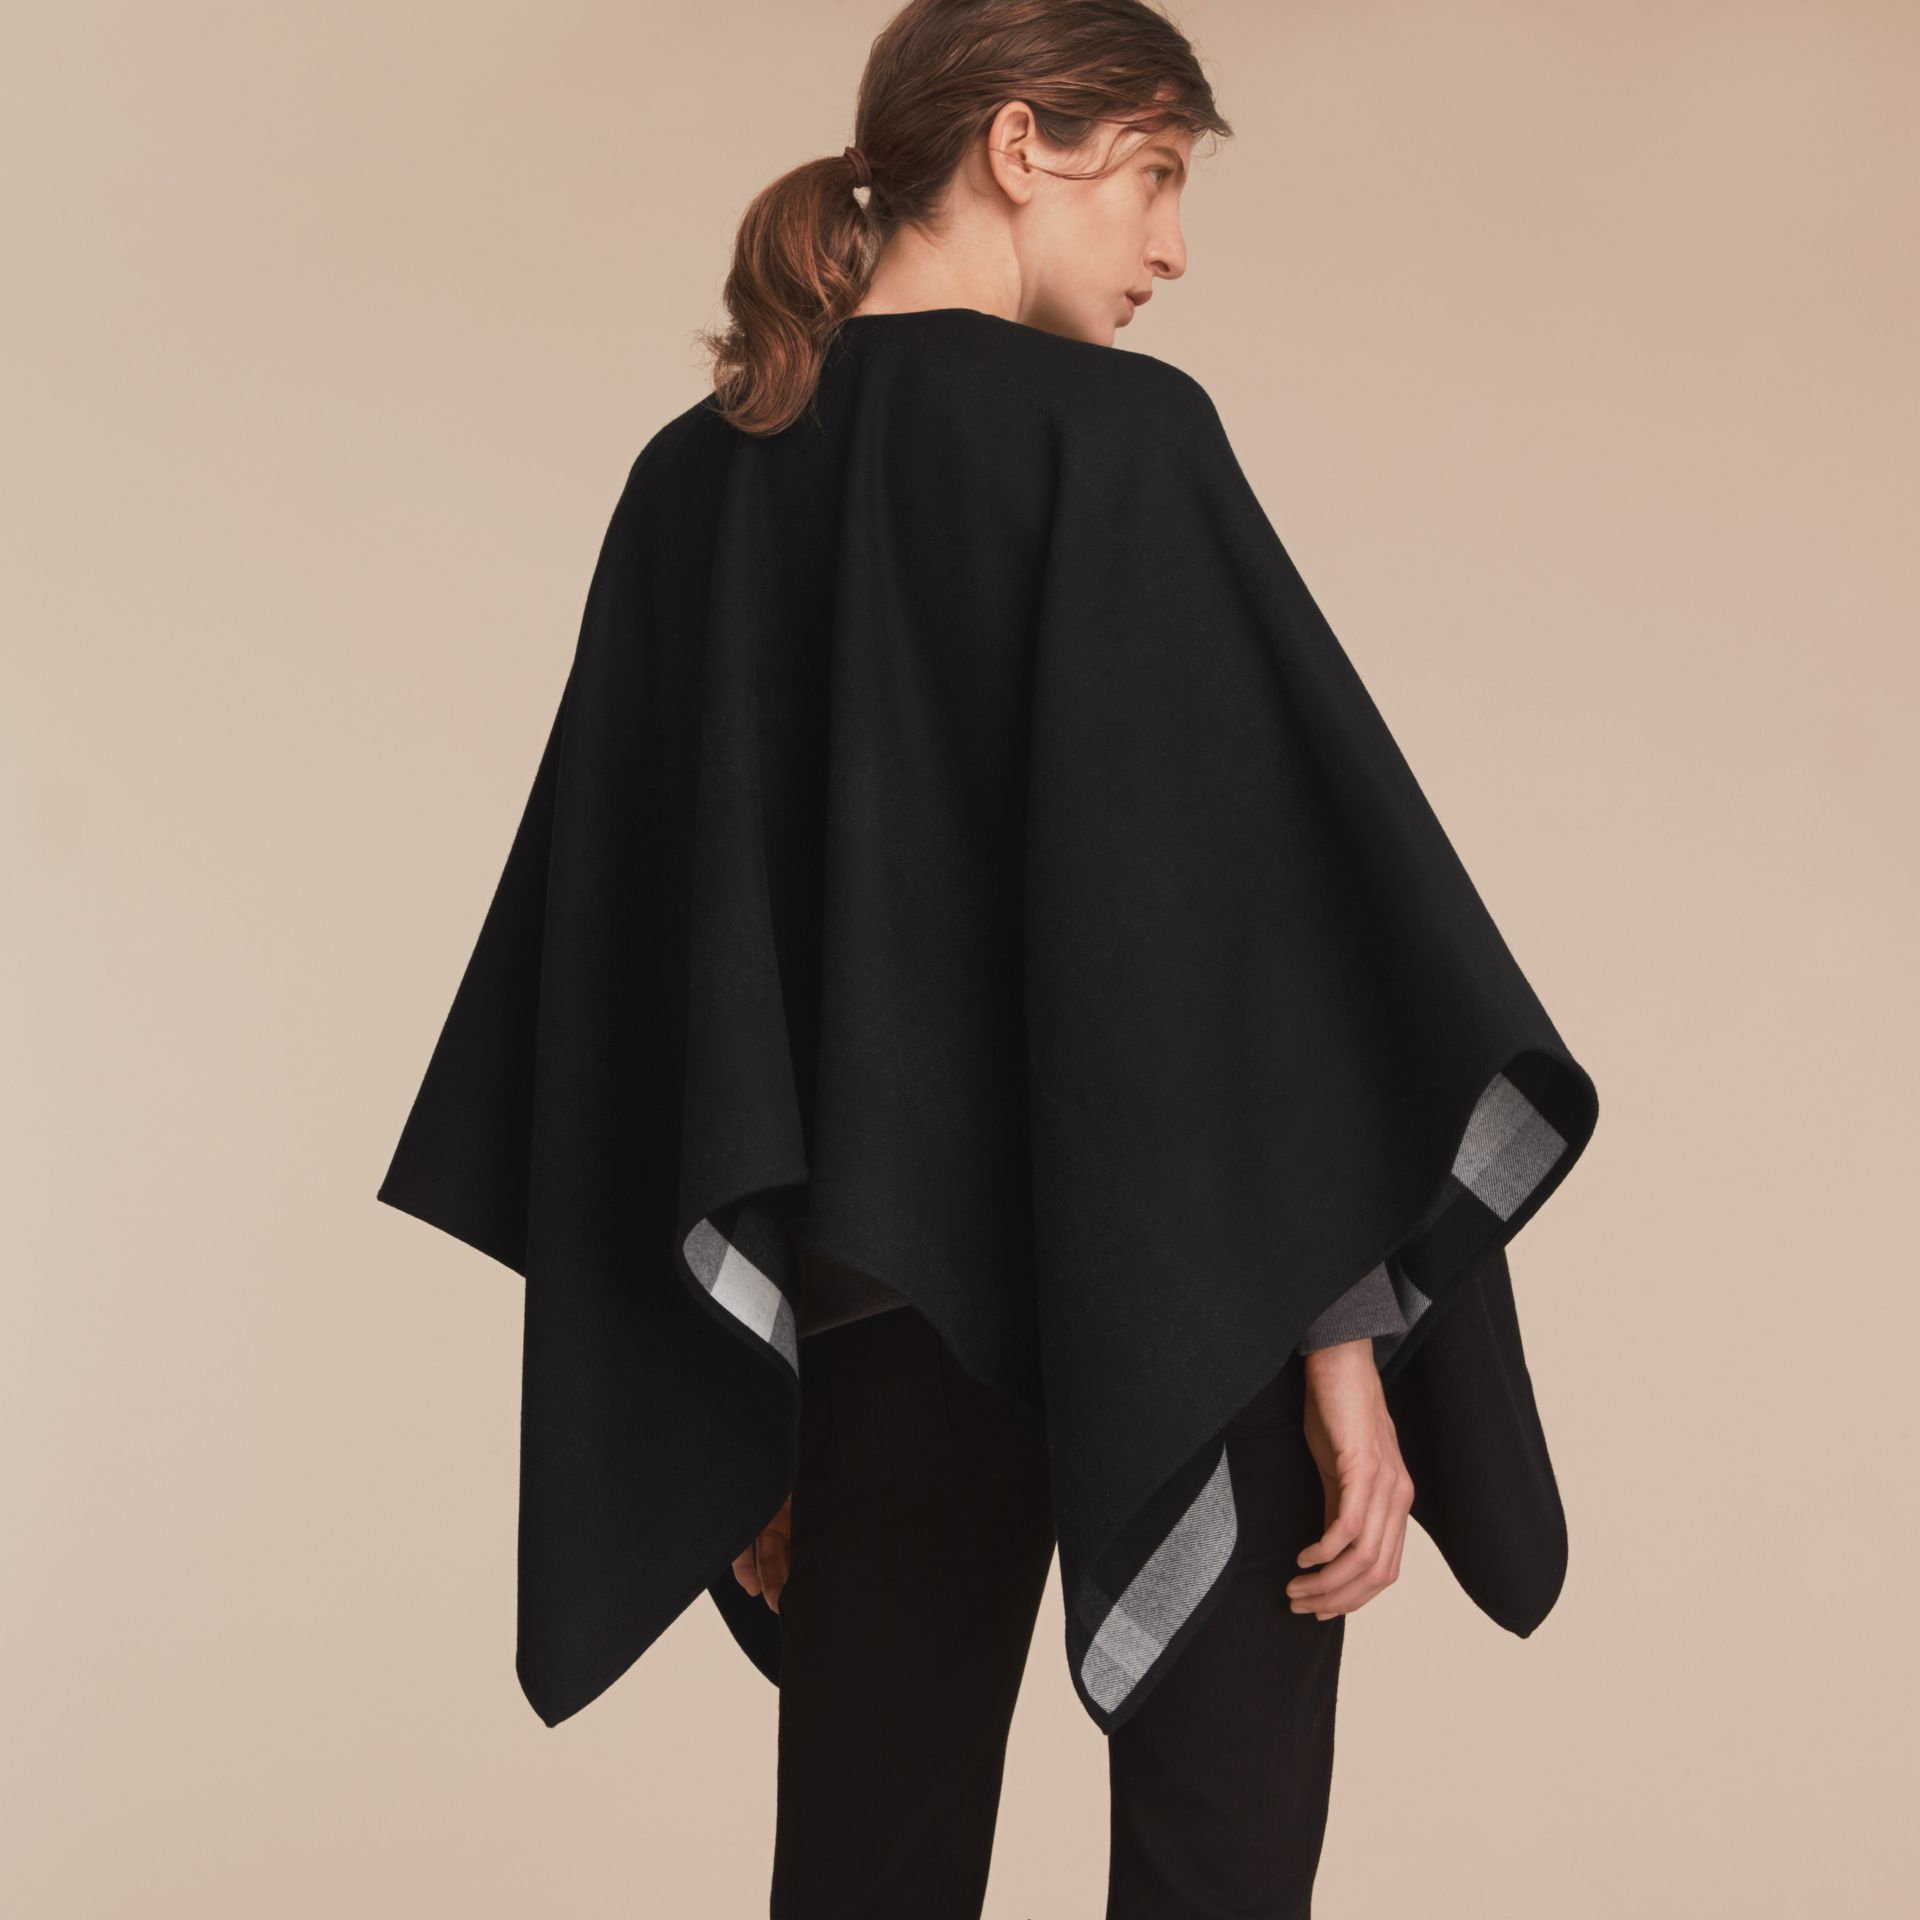 Merino Wool Poncho in Black - Women | Burberry Australia - gallery image 3